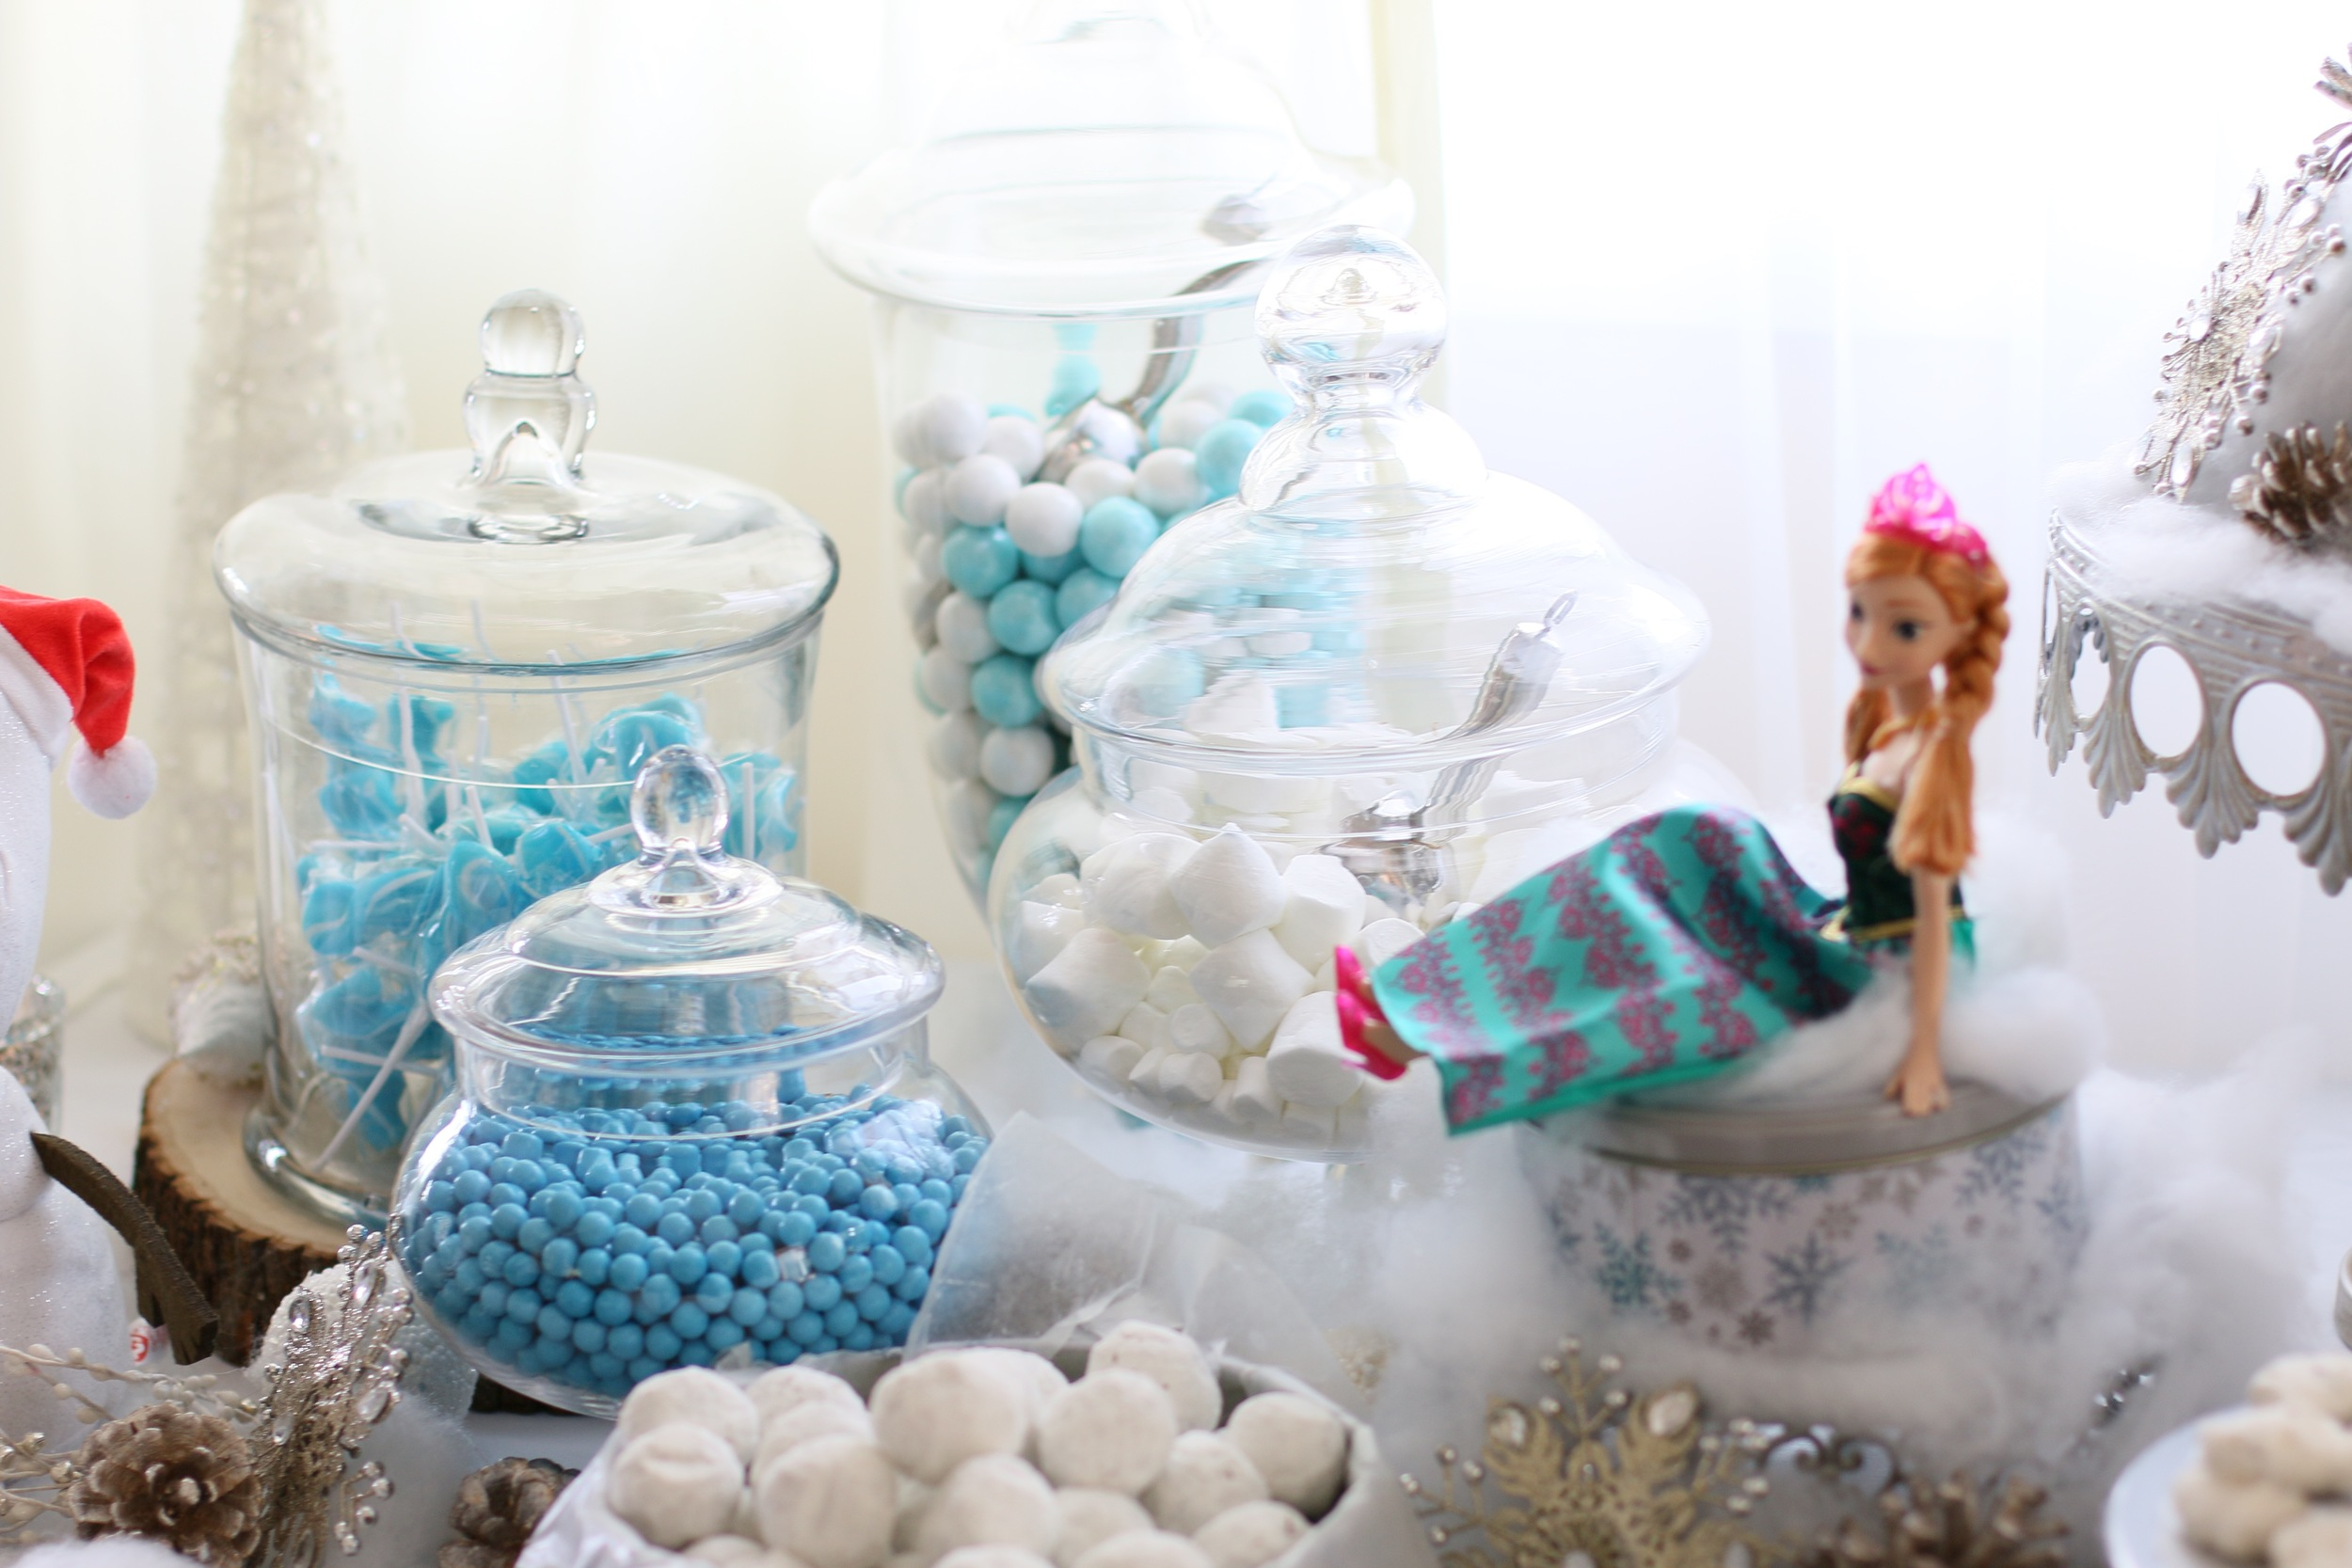 Candy Station Rental for a Frozen Party @inJOYtheParty